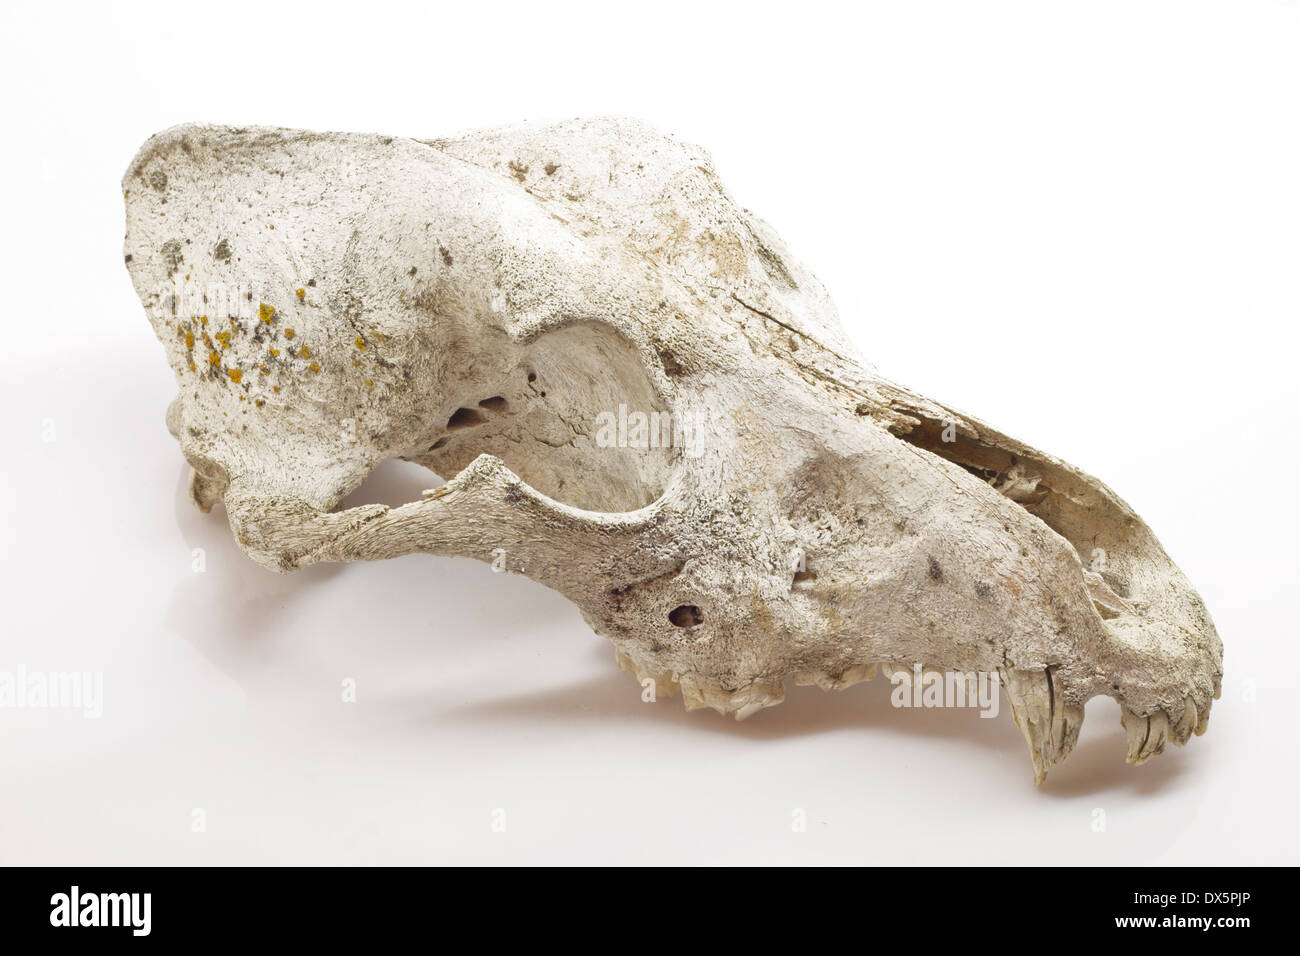 Dog Skull Anatomy Stock Photos & Dog Skull Anatomy Stock Images - Alamy